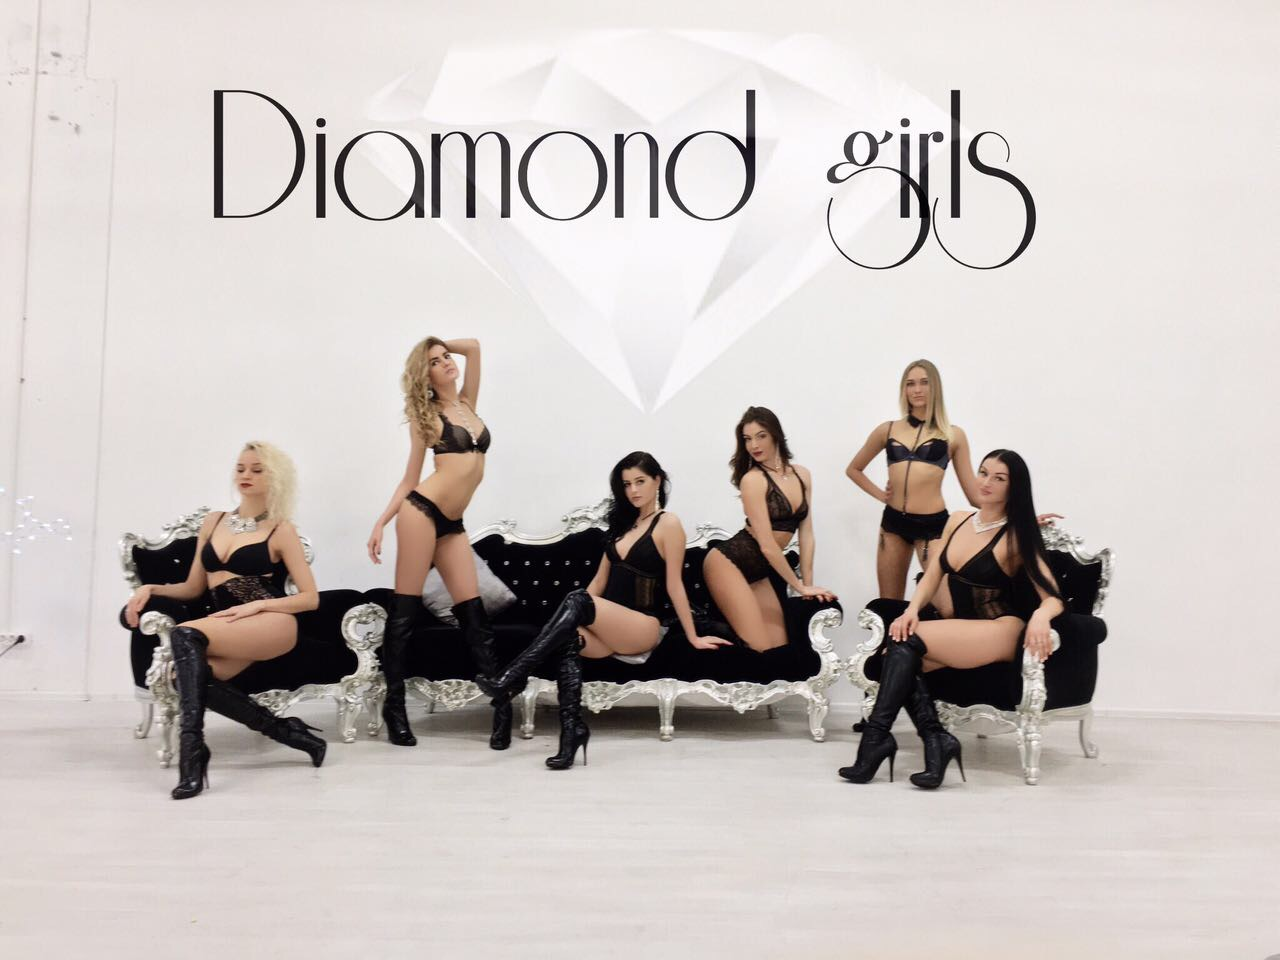 Юди и Diamond girls Минута славы на первом